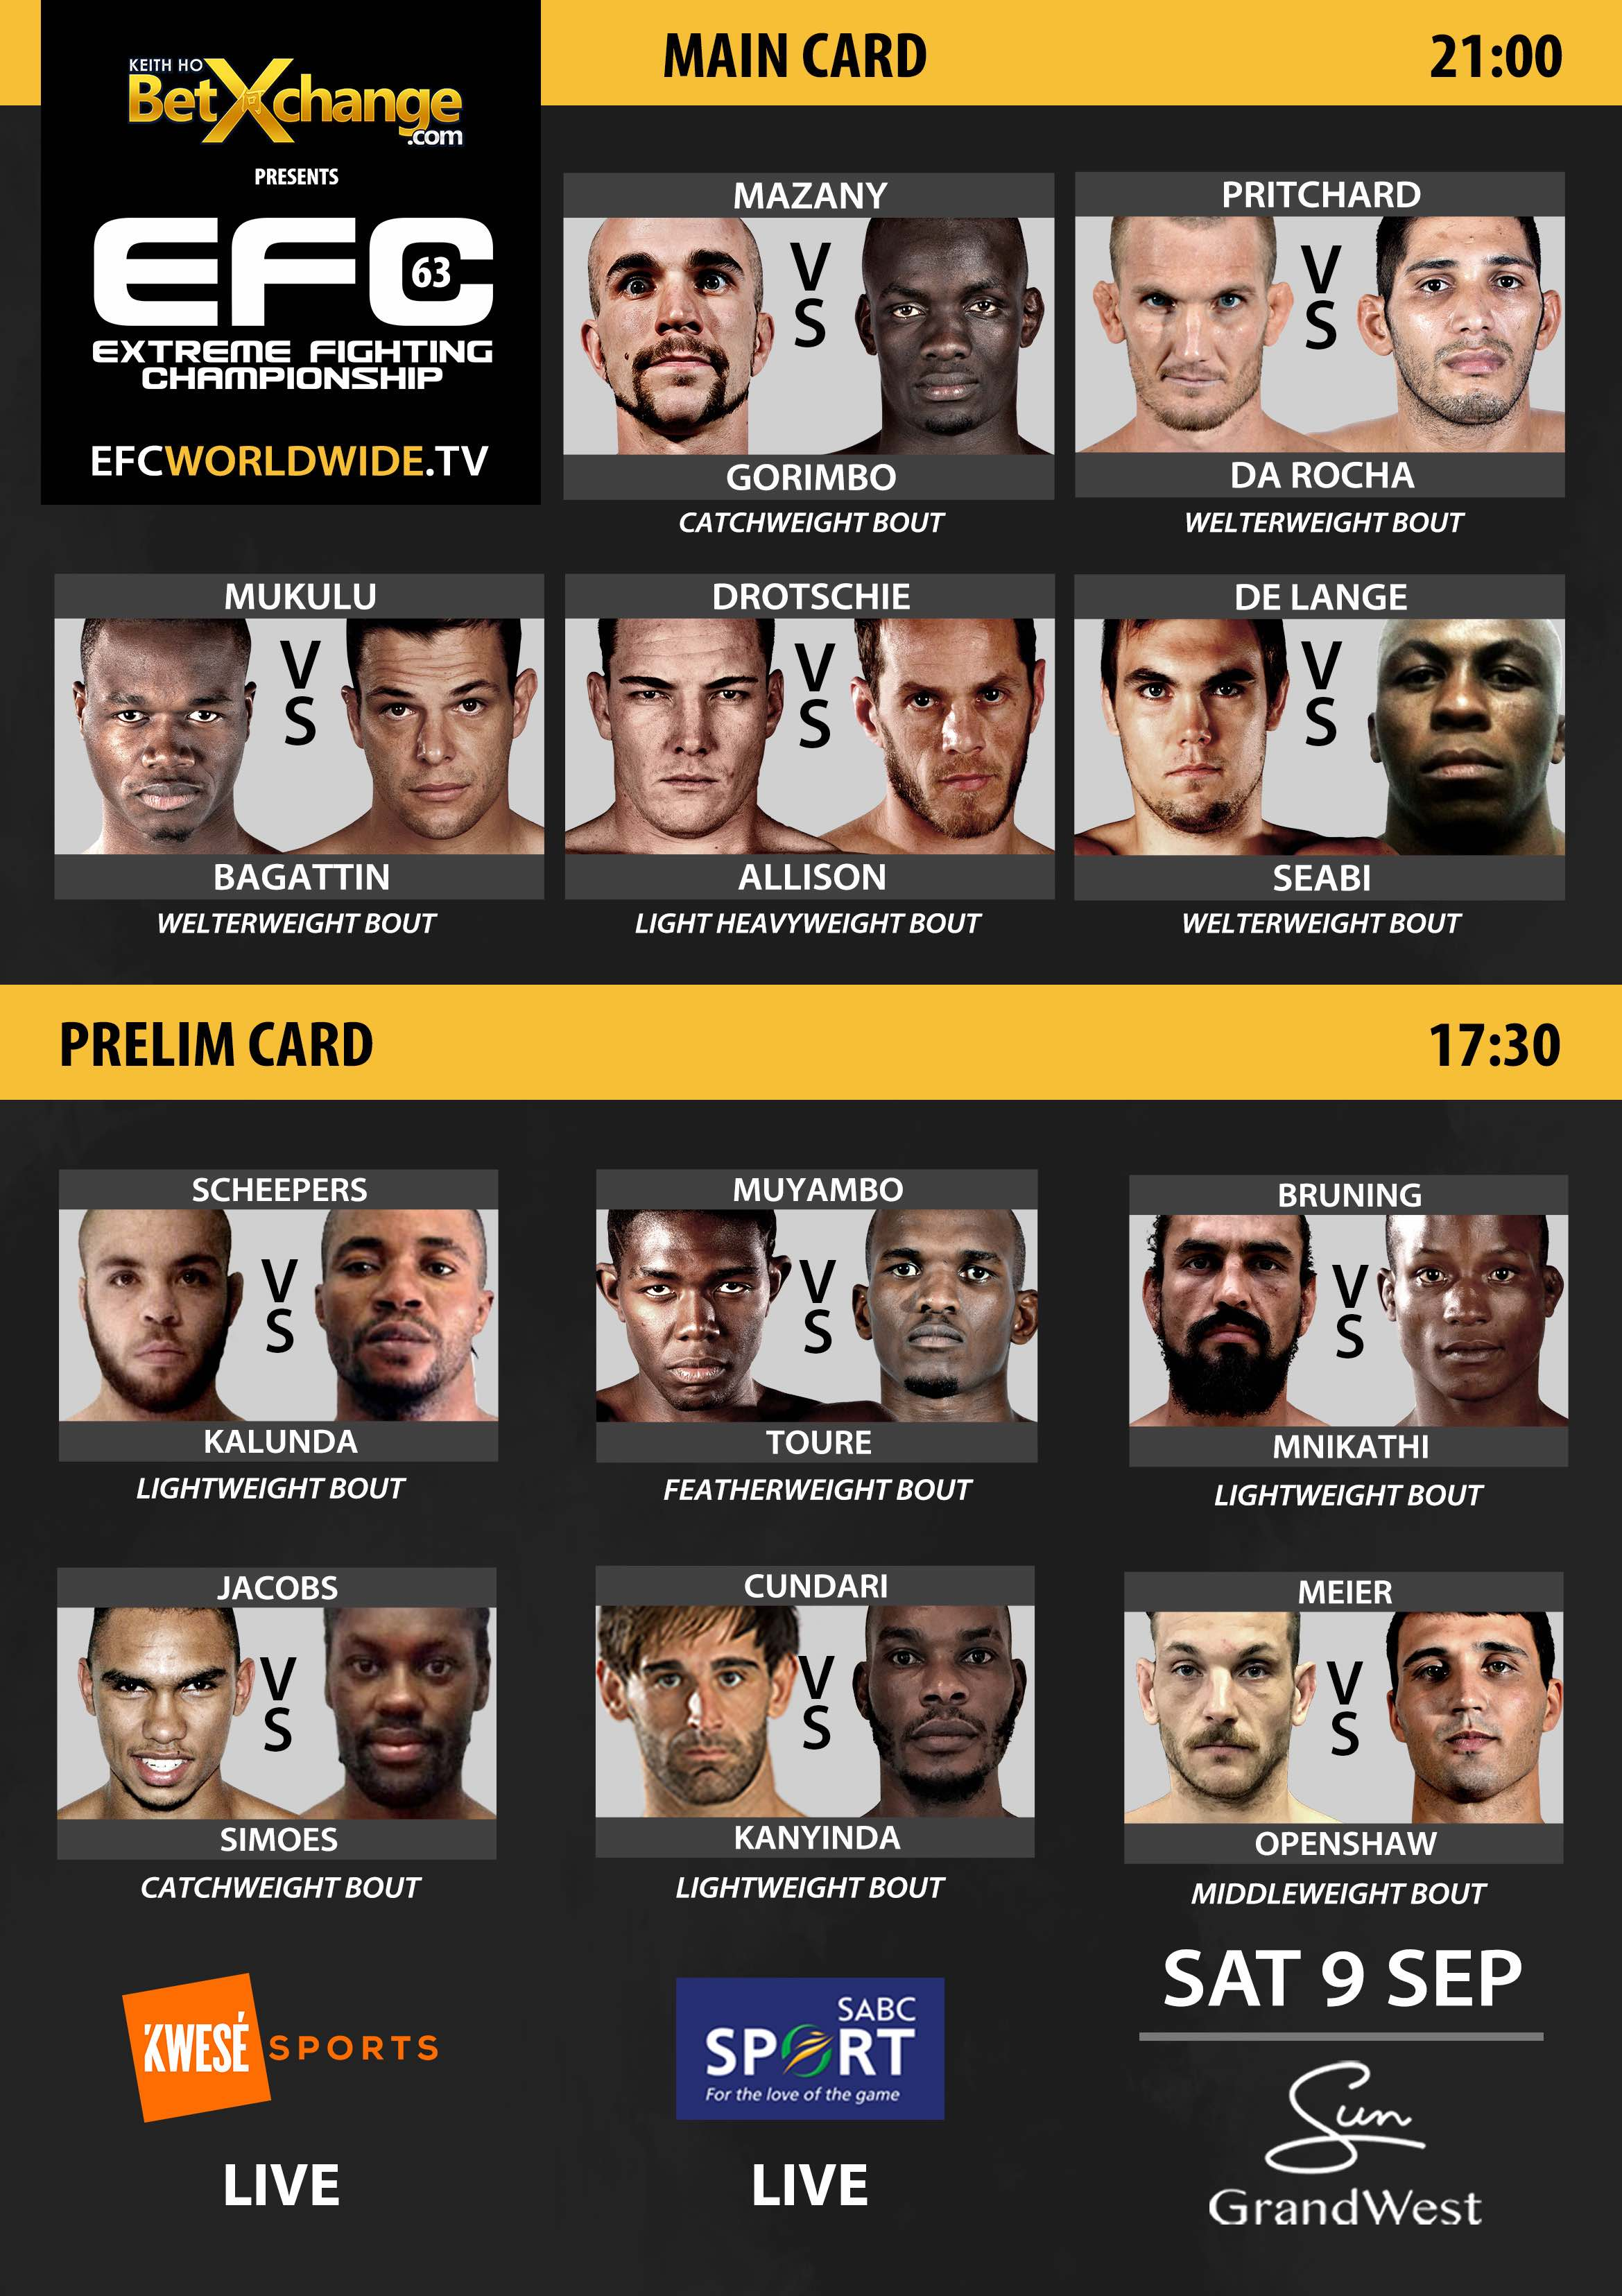 See the full Mixed Martial Arts fight card for EFC 63